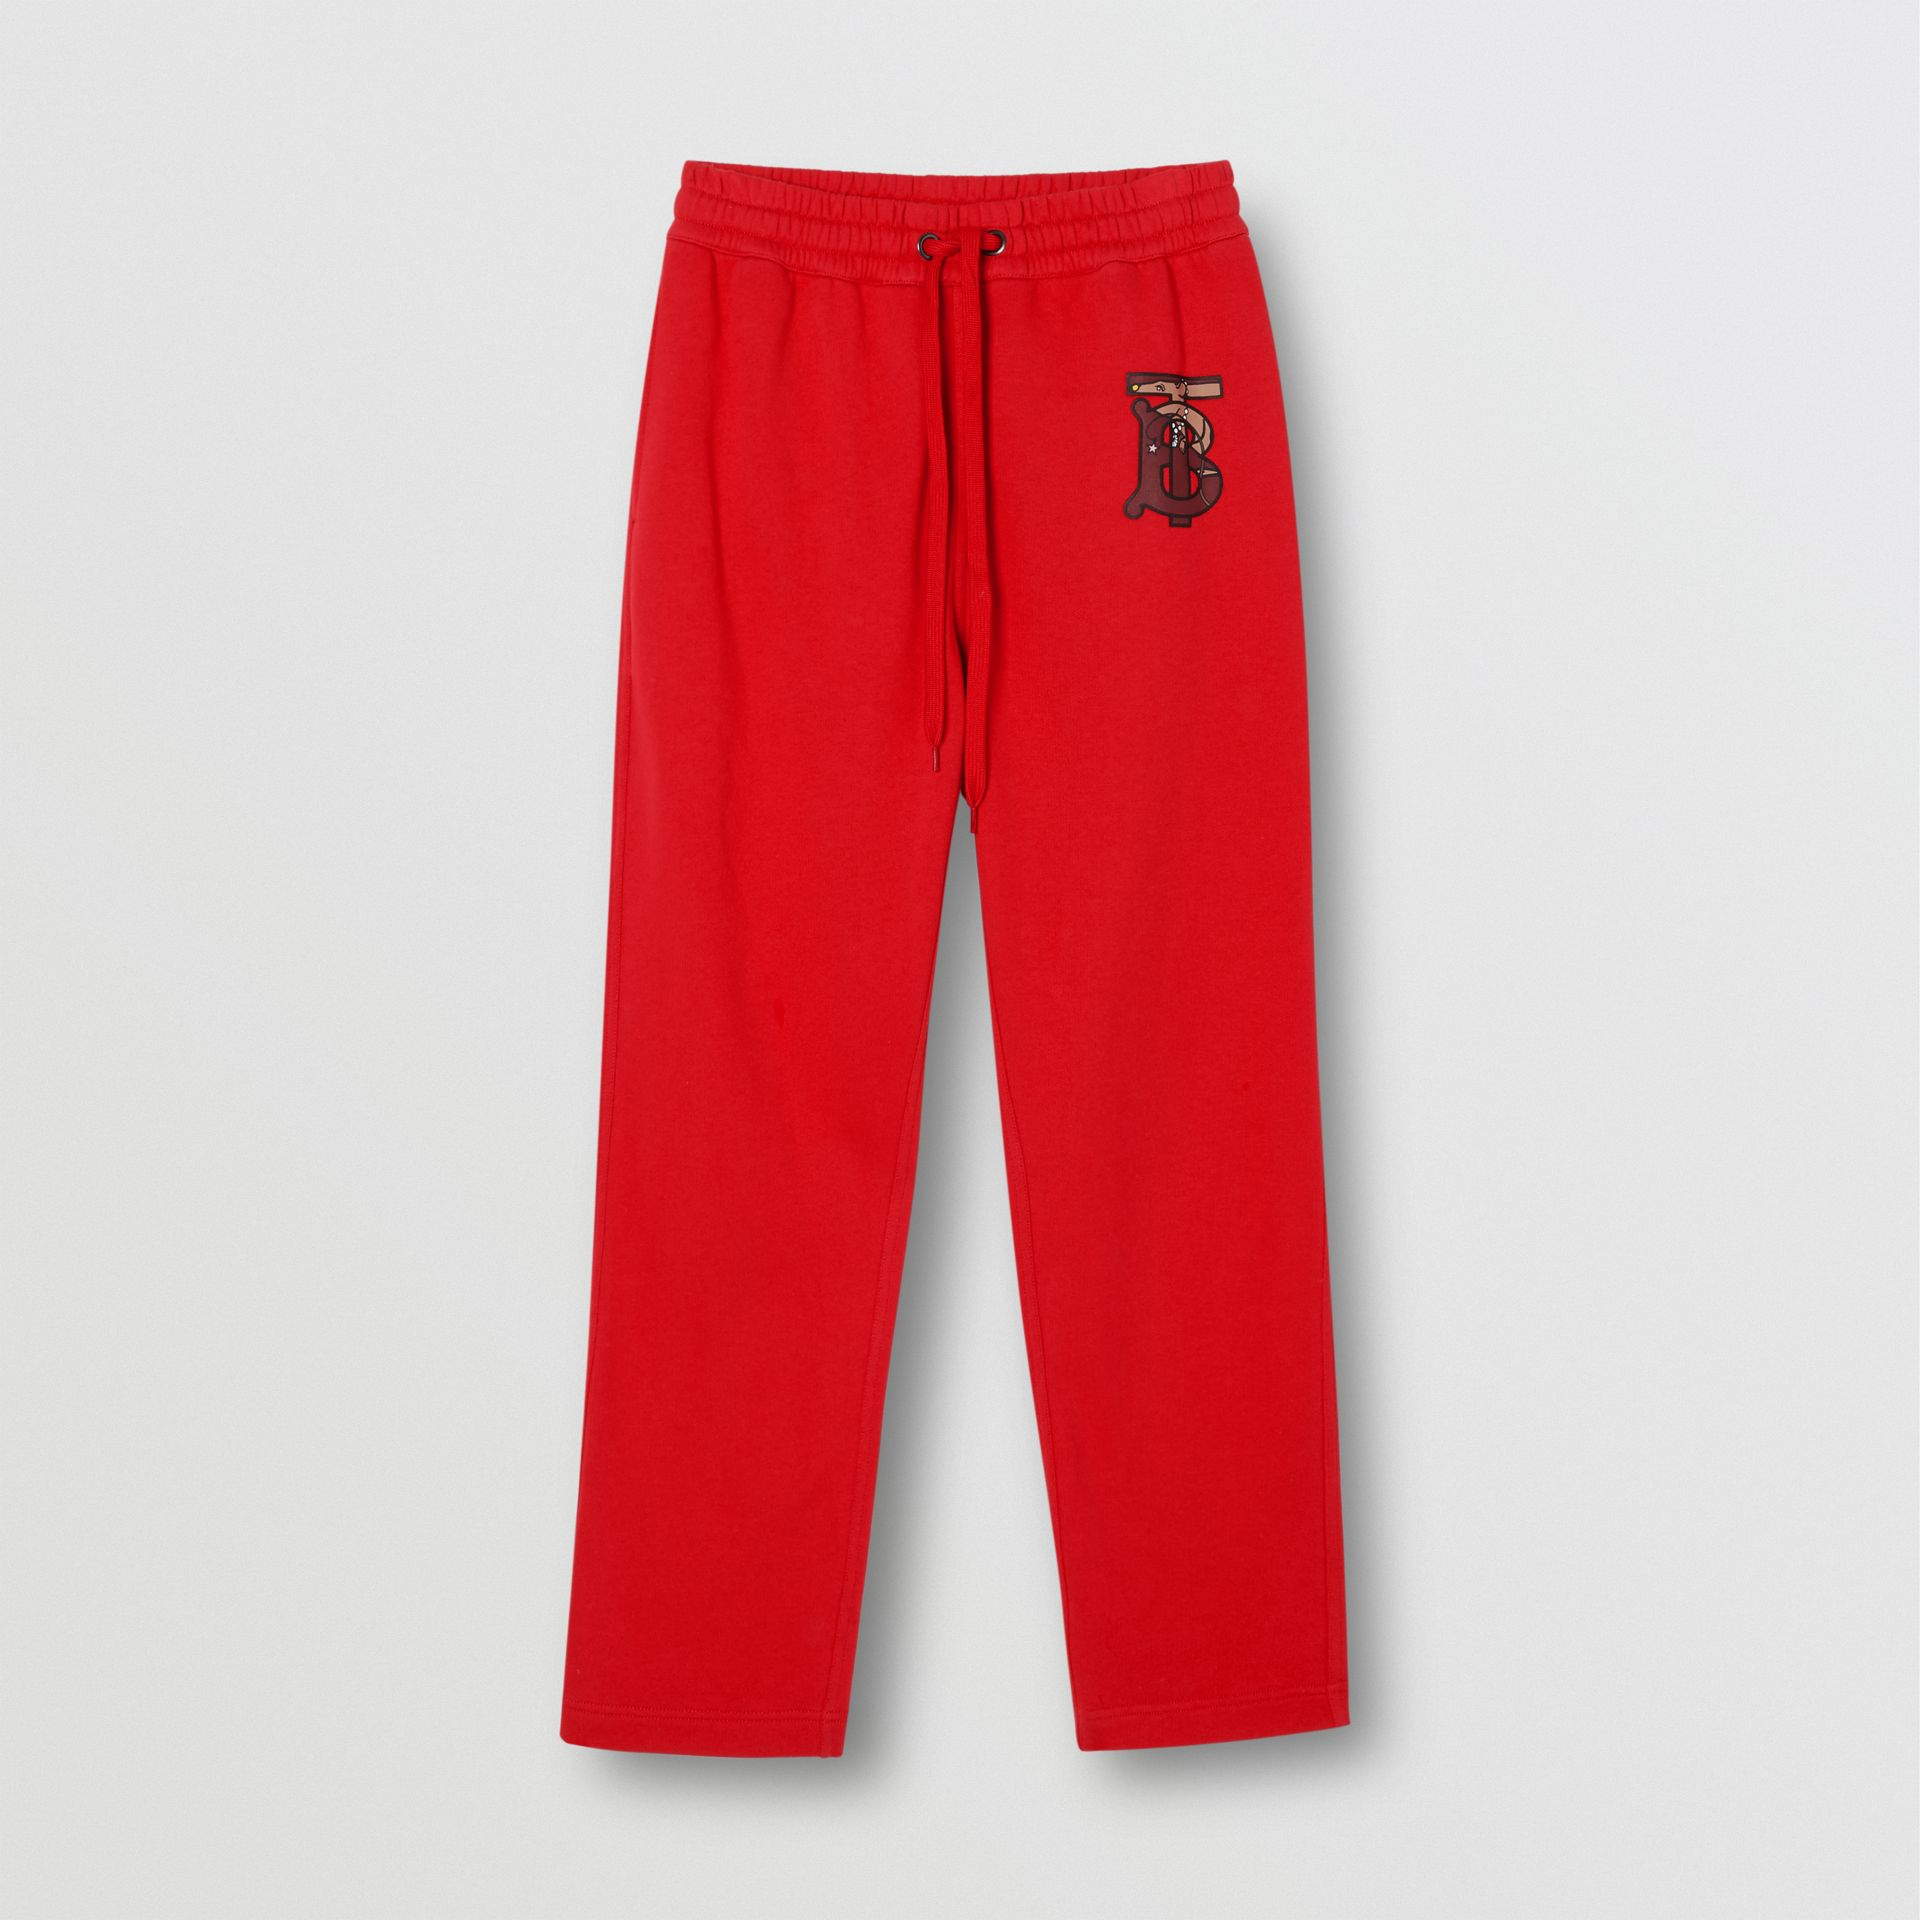 Monogram Motif Cotton Trackpants in Bright Red - Women | Burberry - gallery image 3